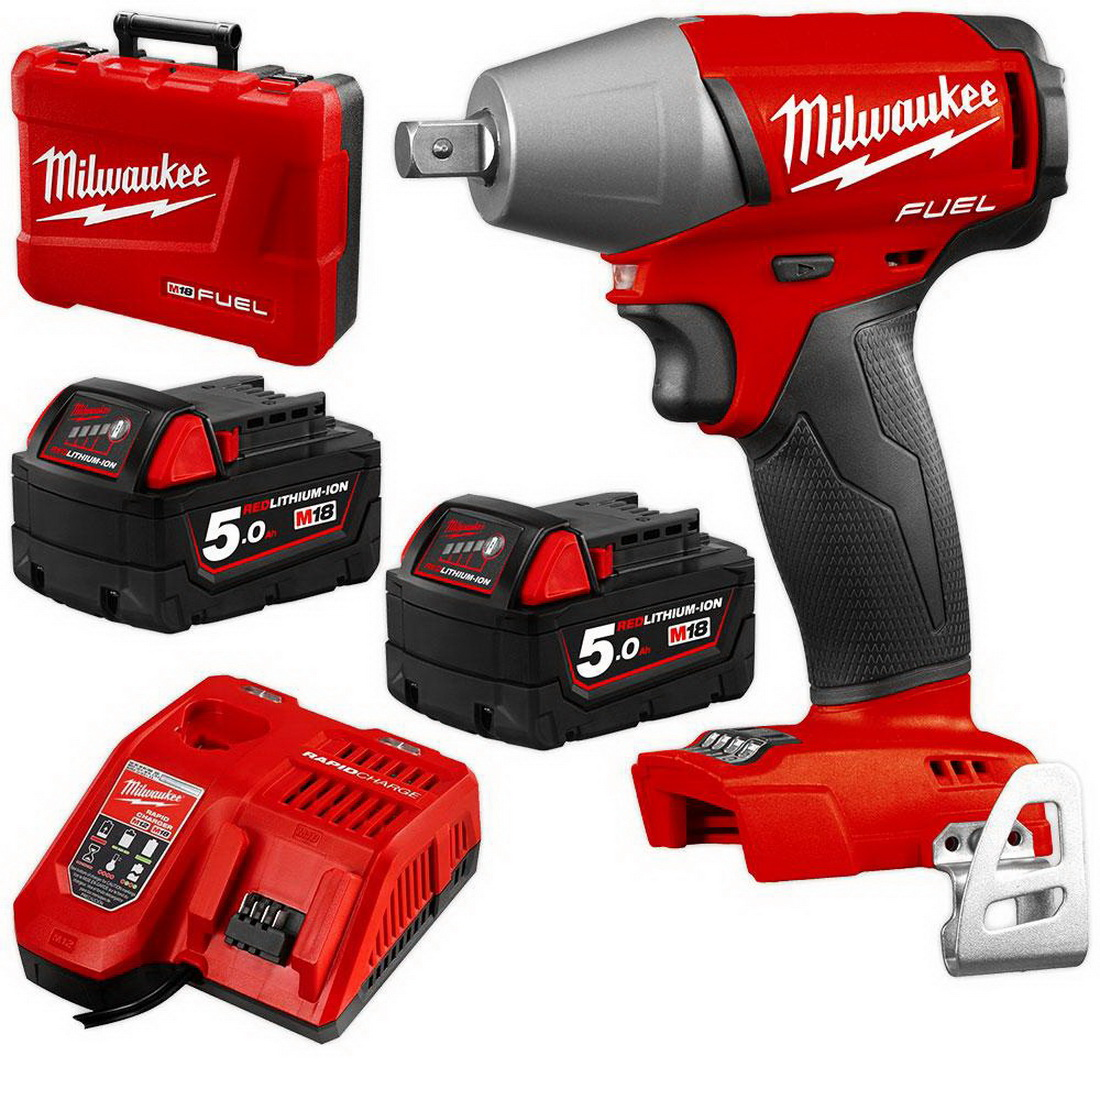 M18 FUEL Li-ion Cordless Impact Wrench Kit with Pin Detent 18V 5Ah 1/2inch 0-3200ipm M18FIWP12-502C